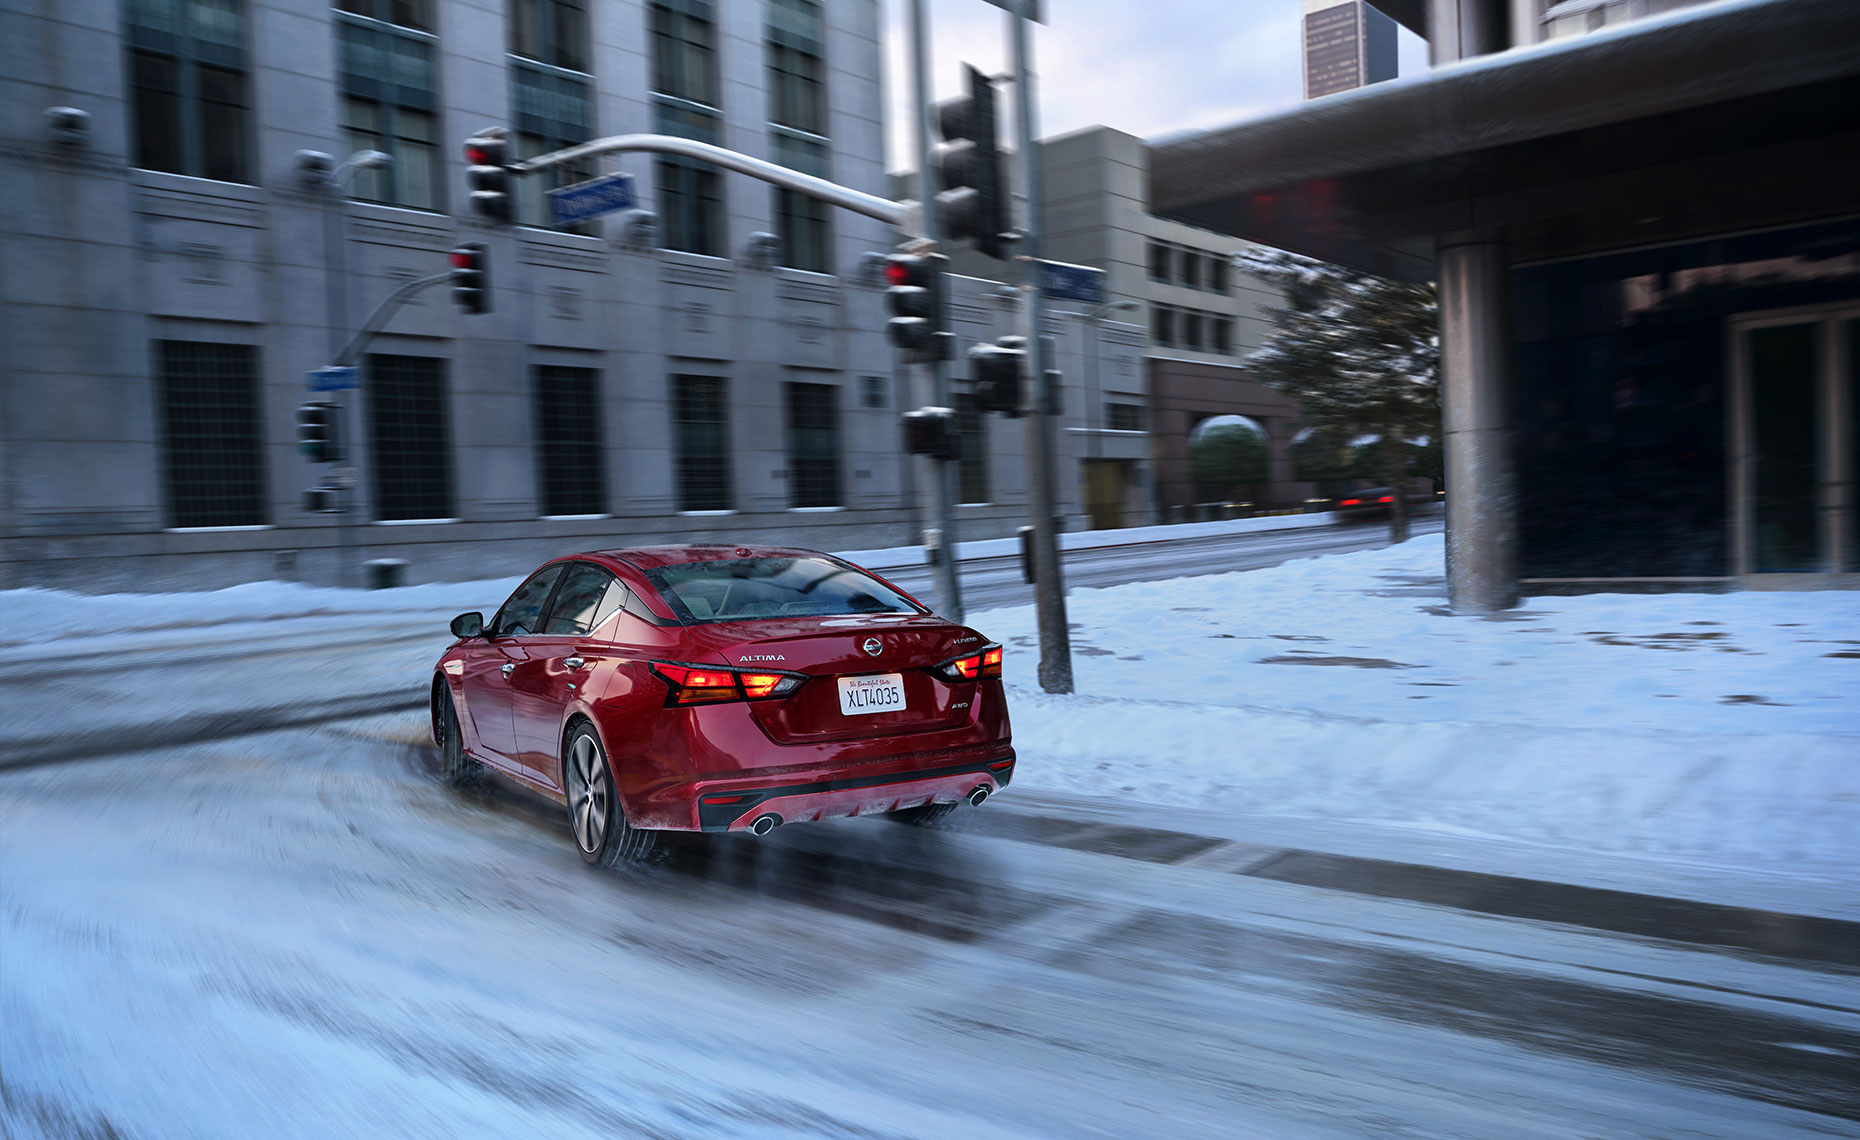 010_ALTIMA_City_Snow